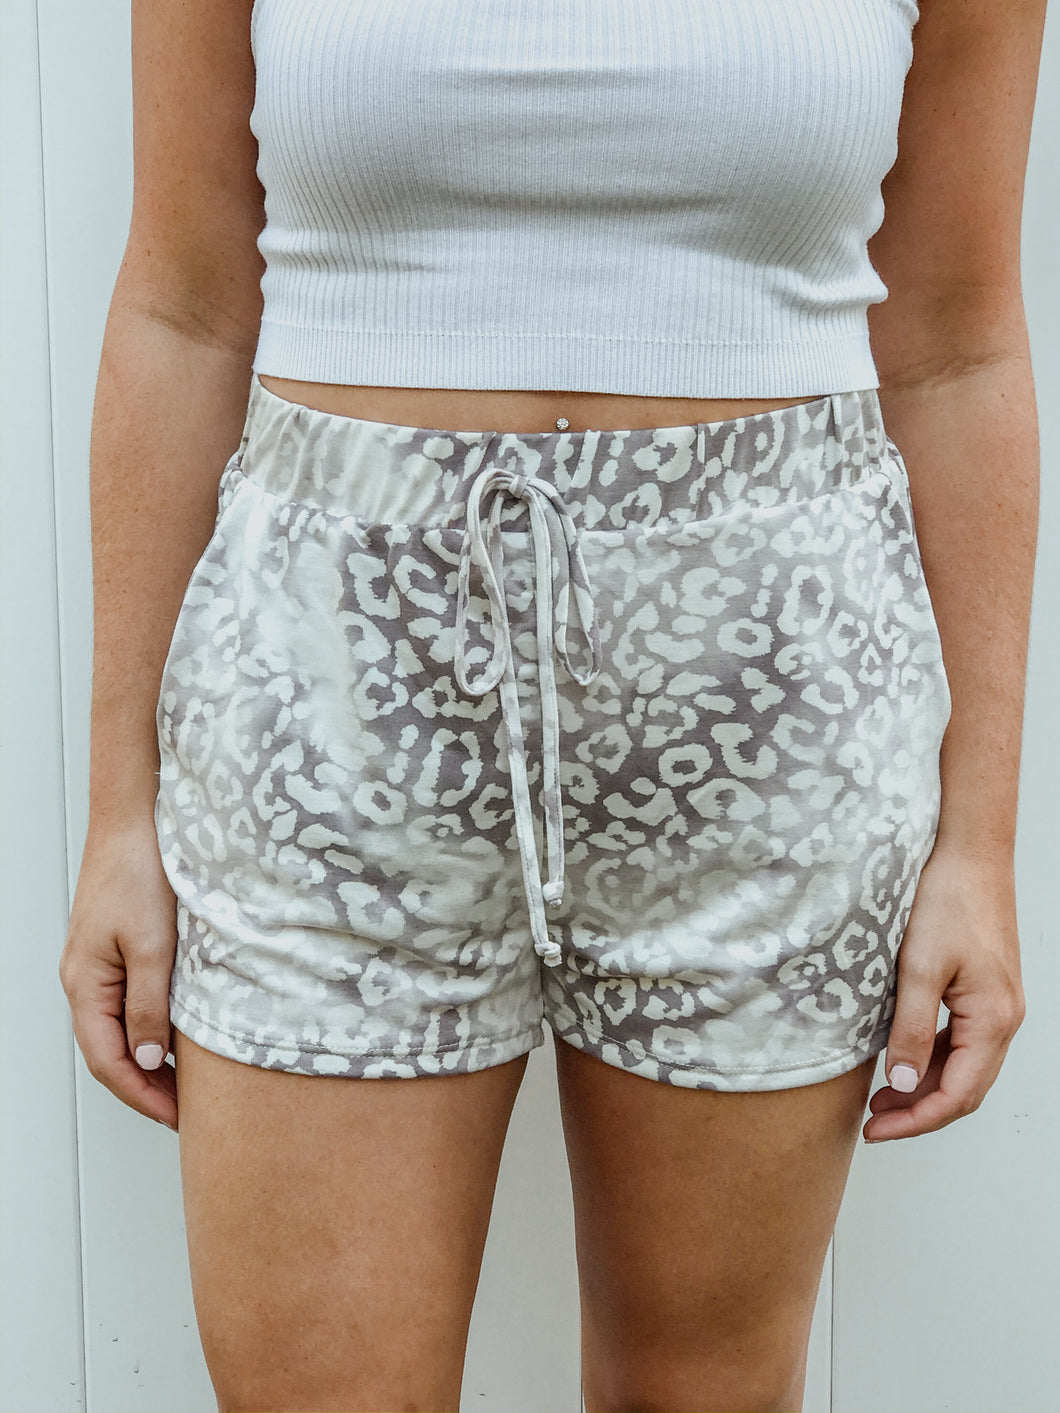 The Riss Shorts